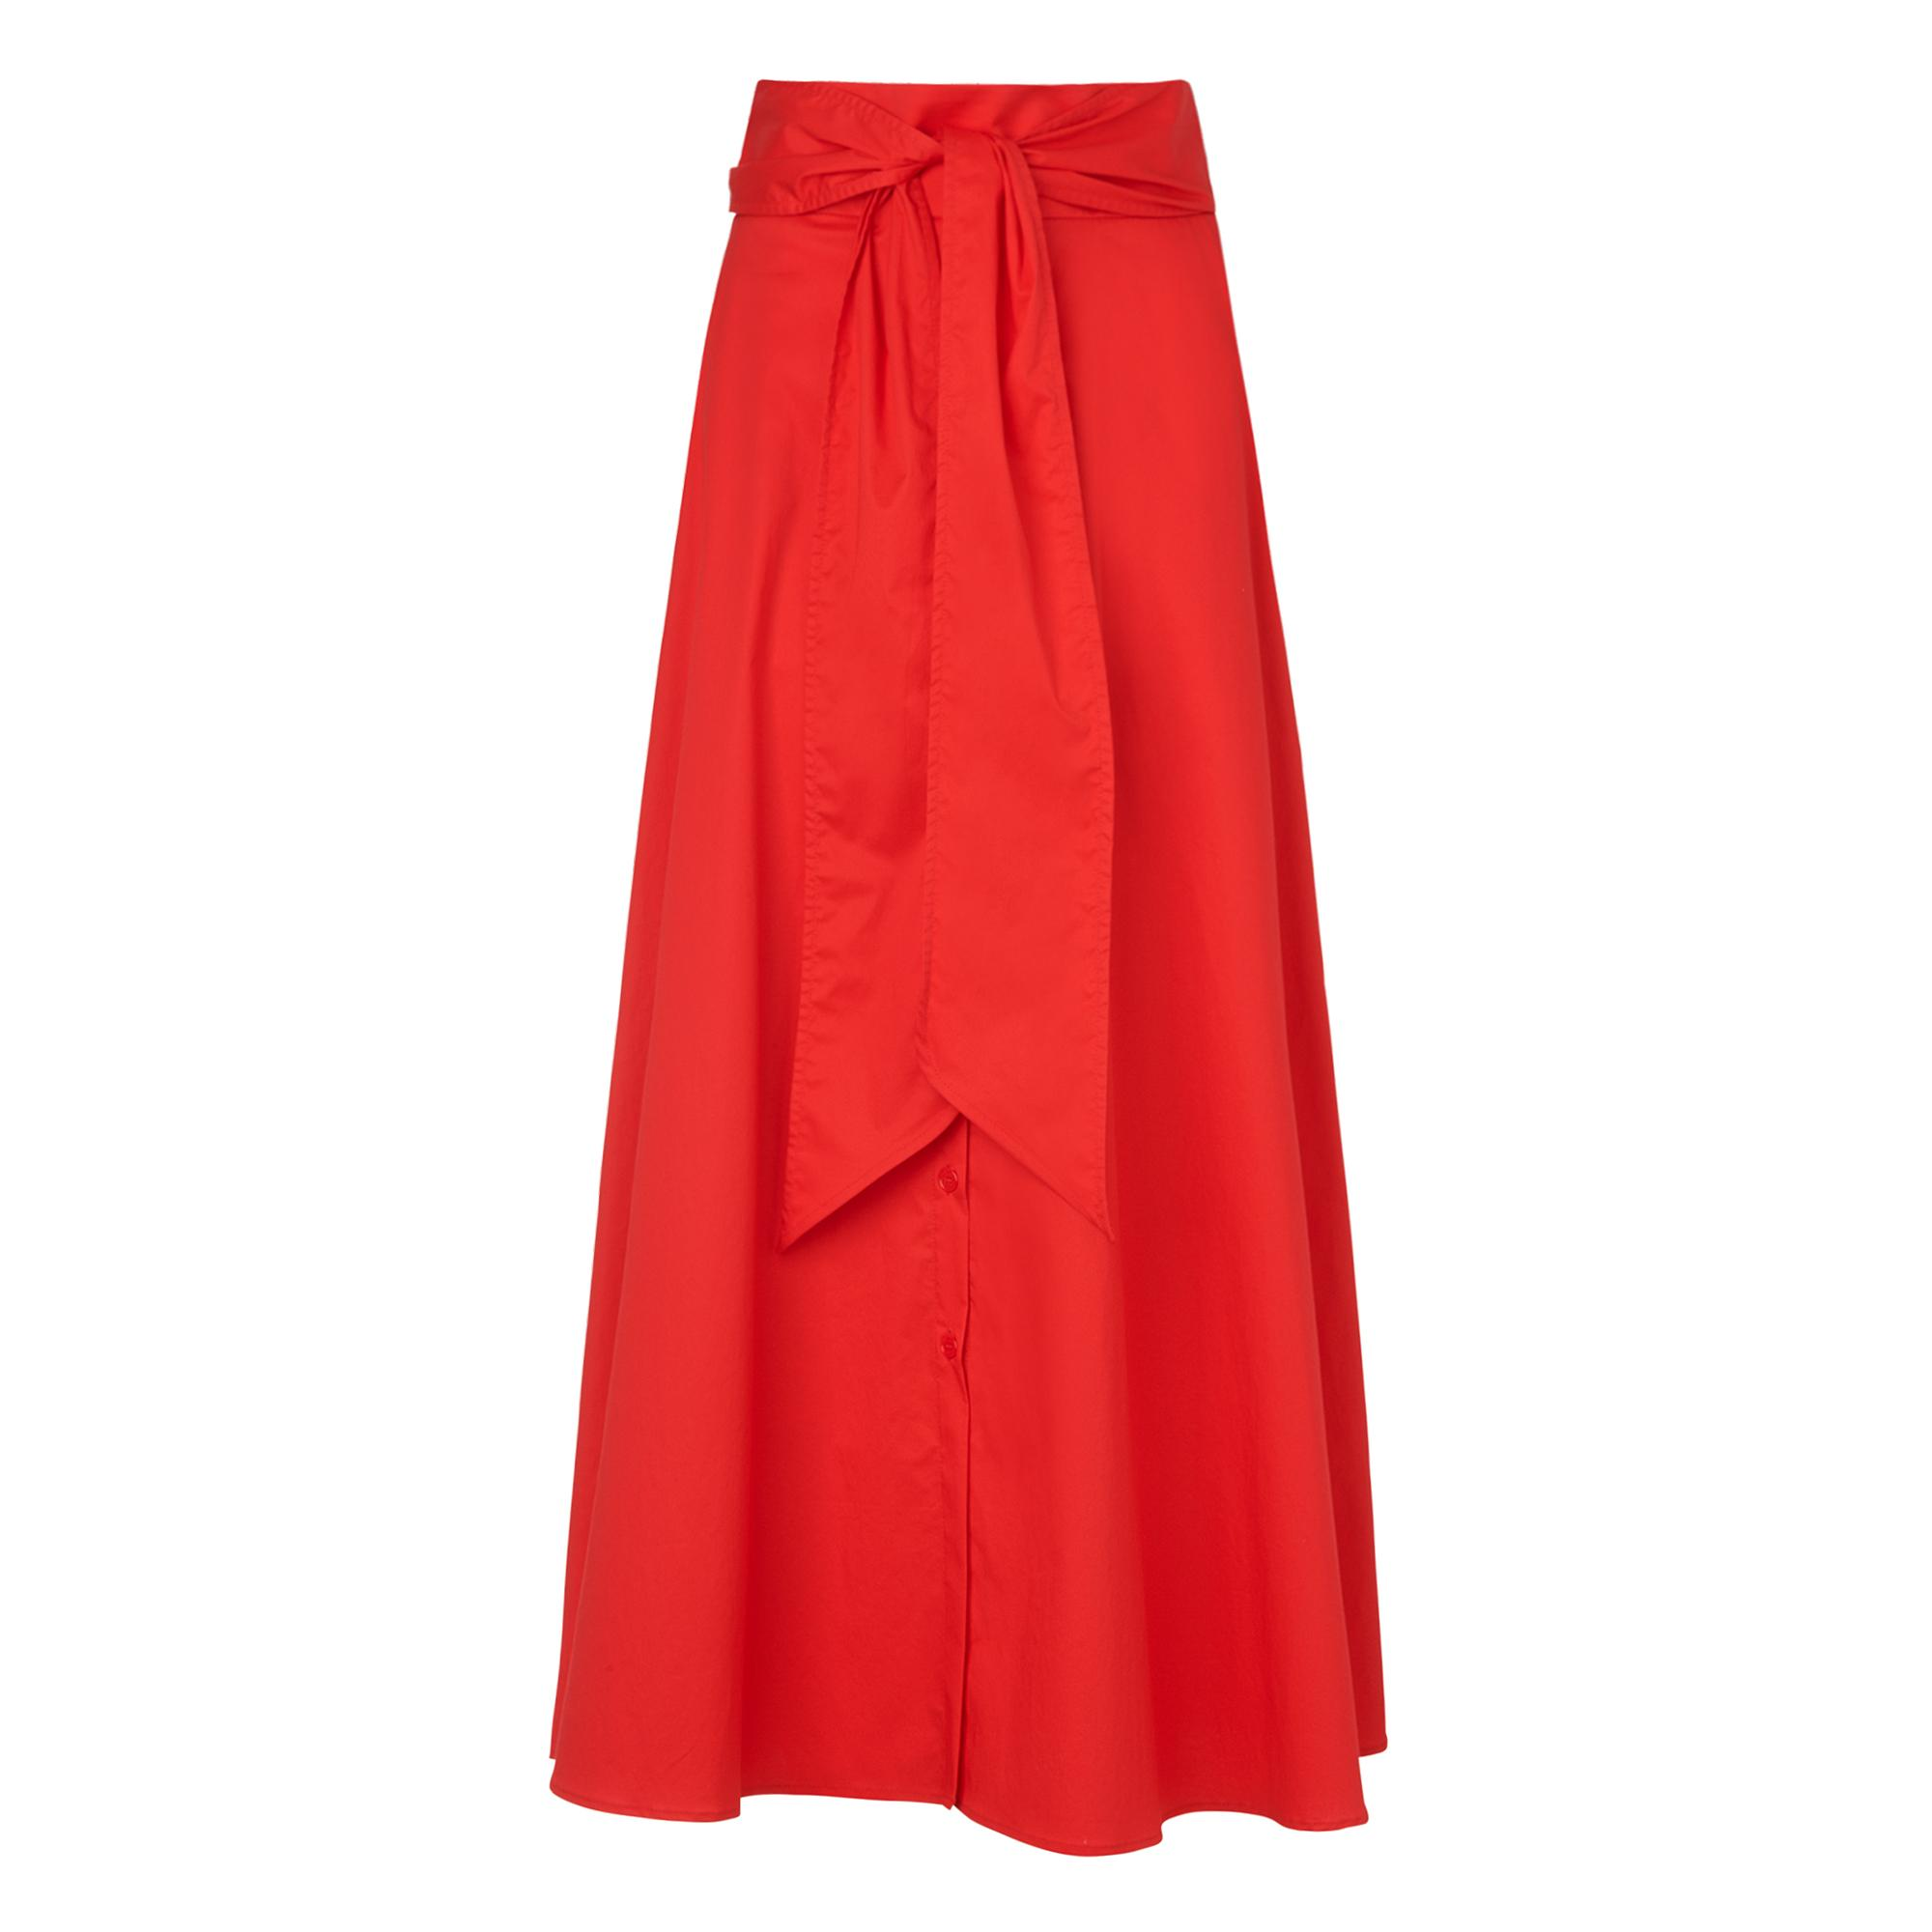 Darly Red Cotton Skirt